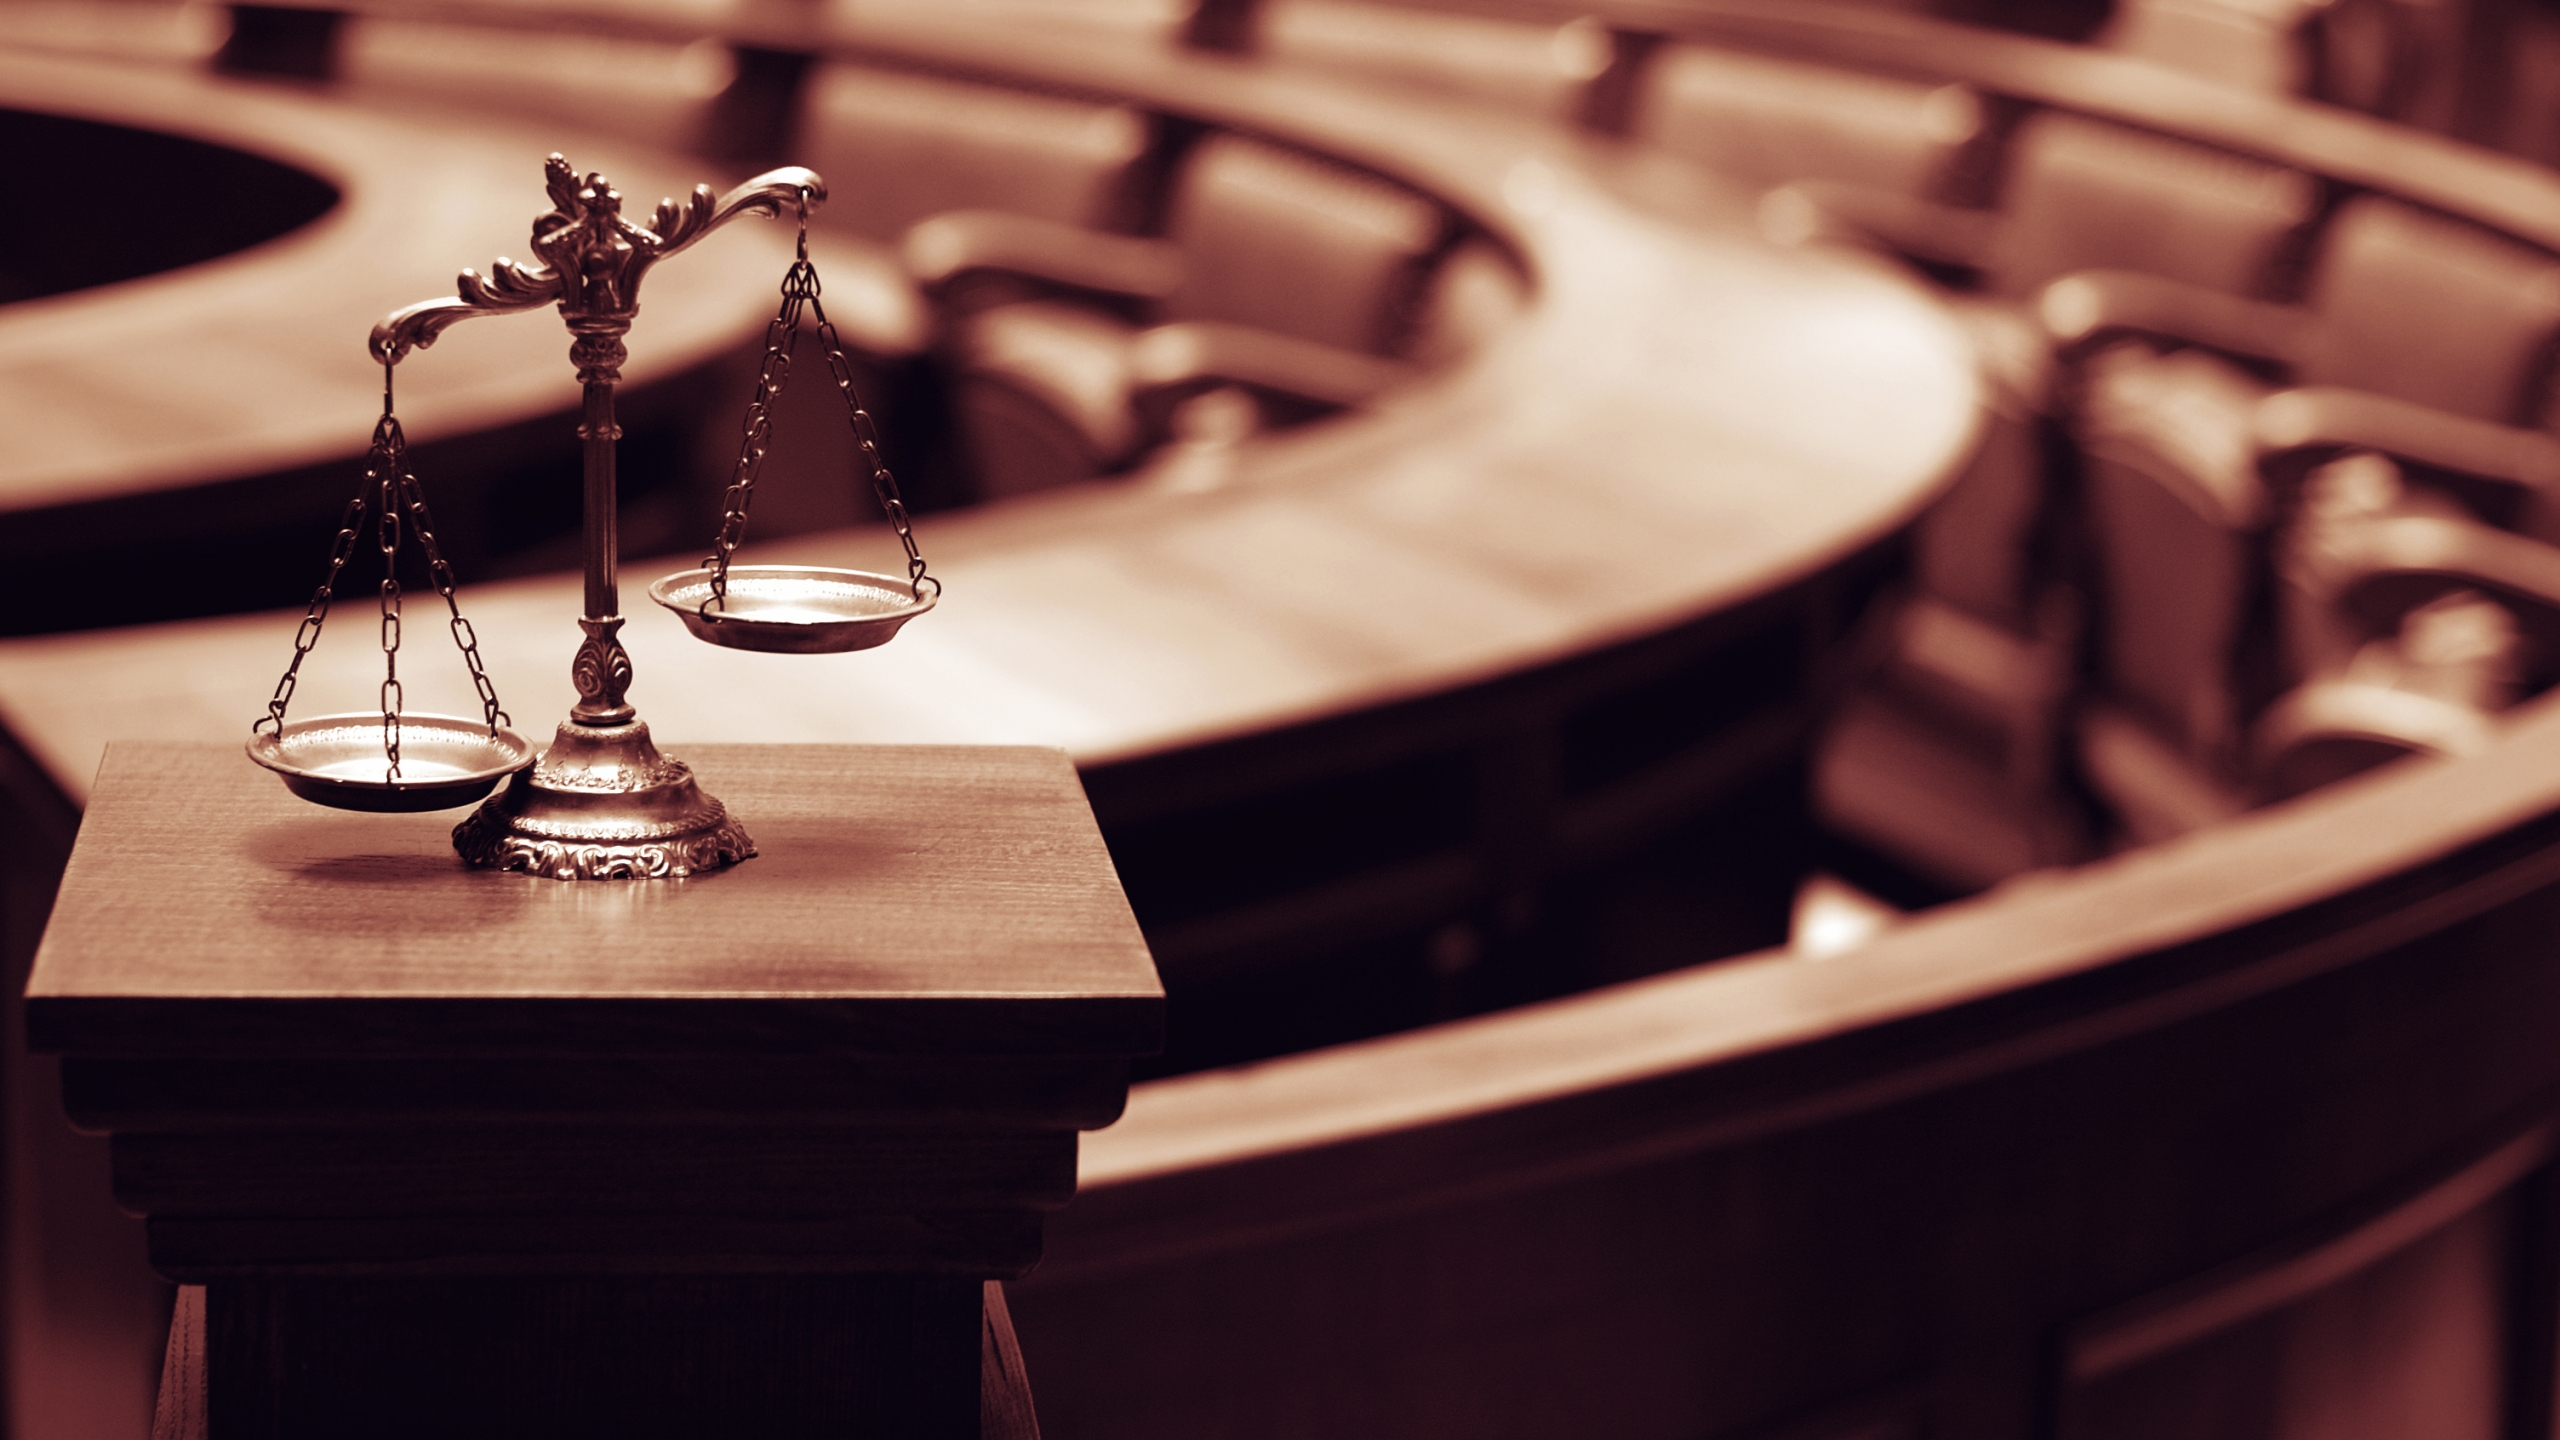 judge courtroom lawsuit sue gavel scales justice_242846-842137438